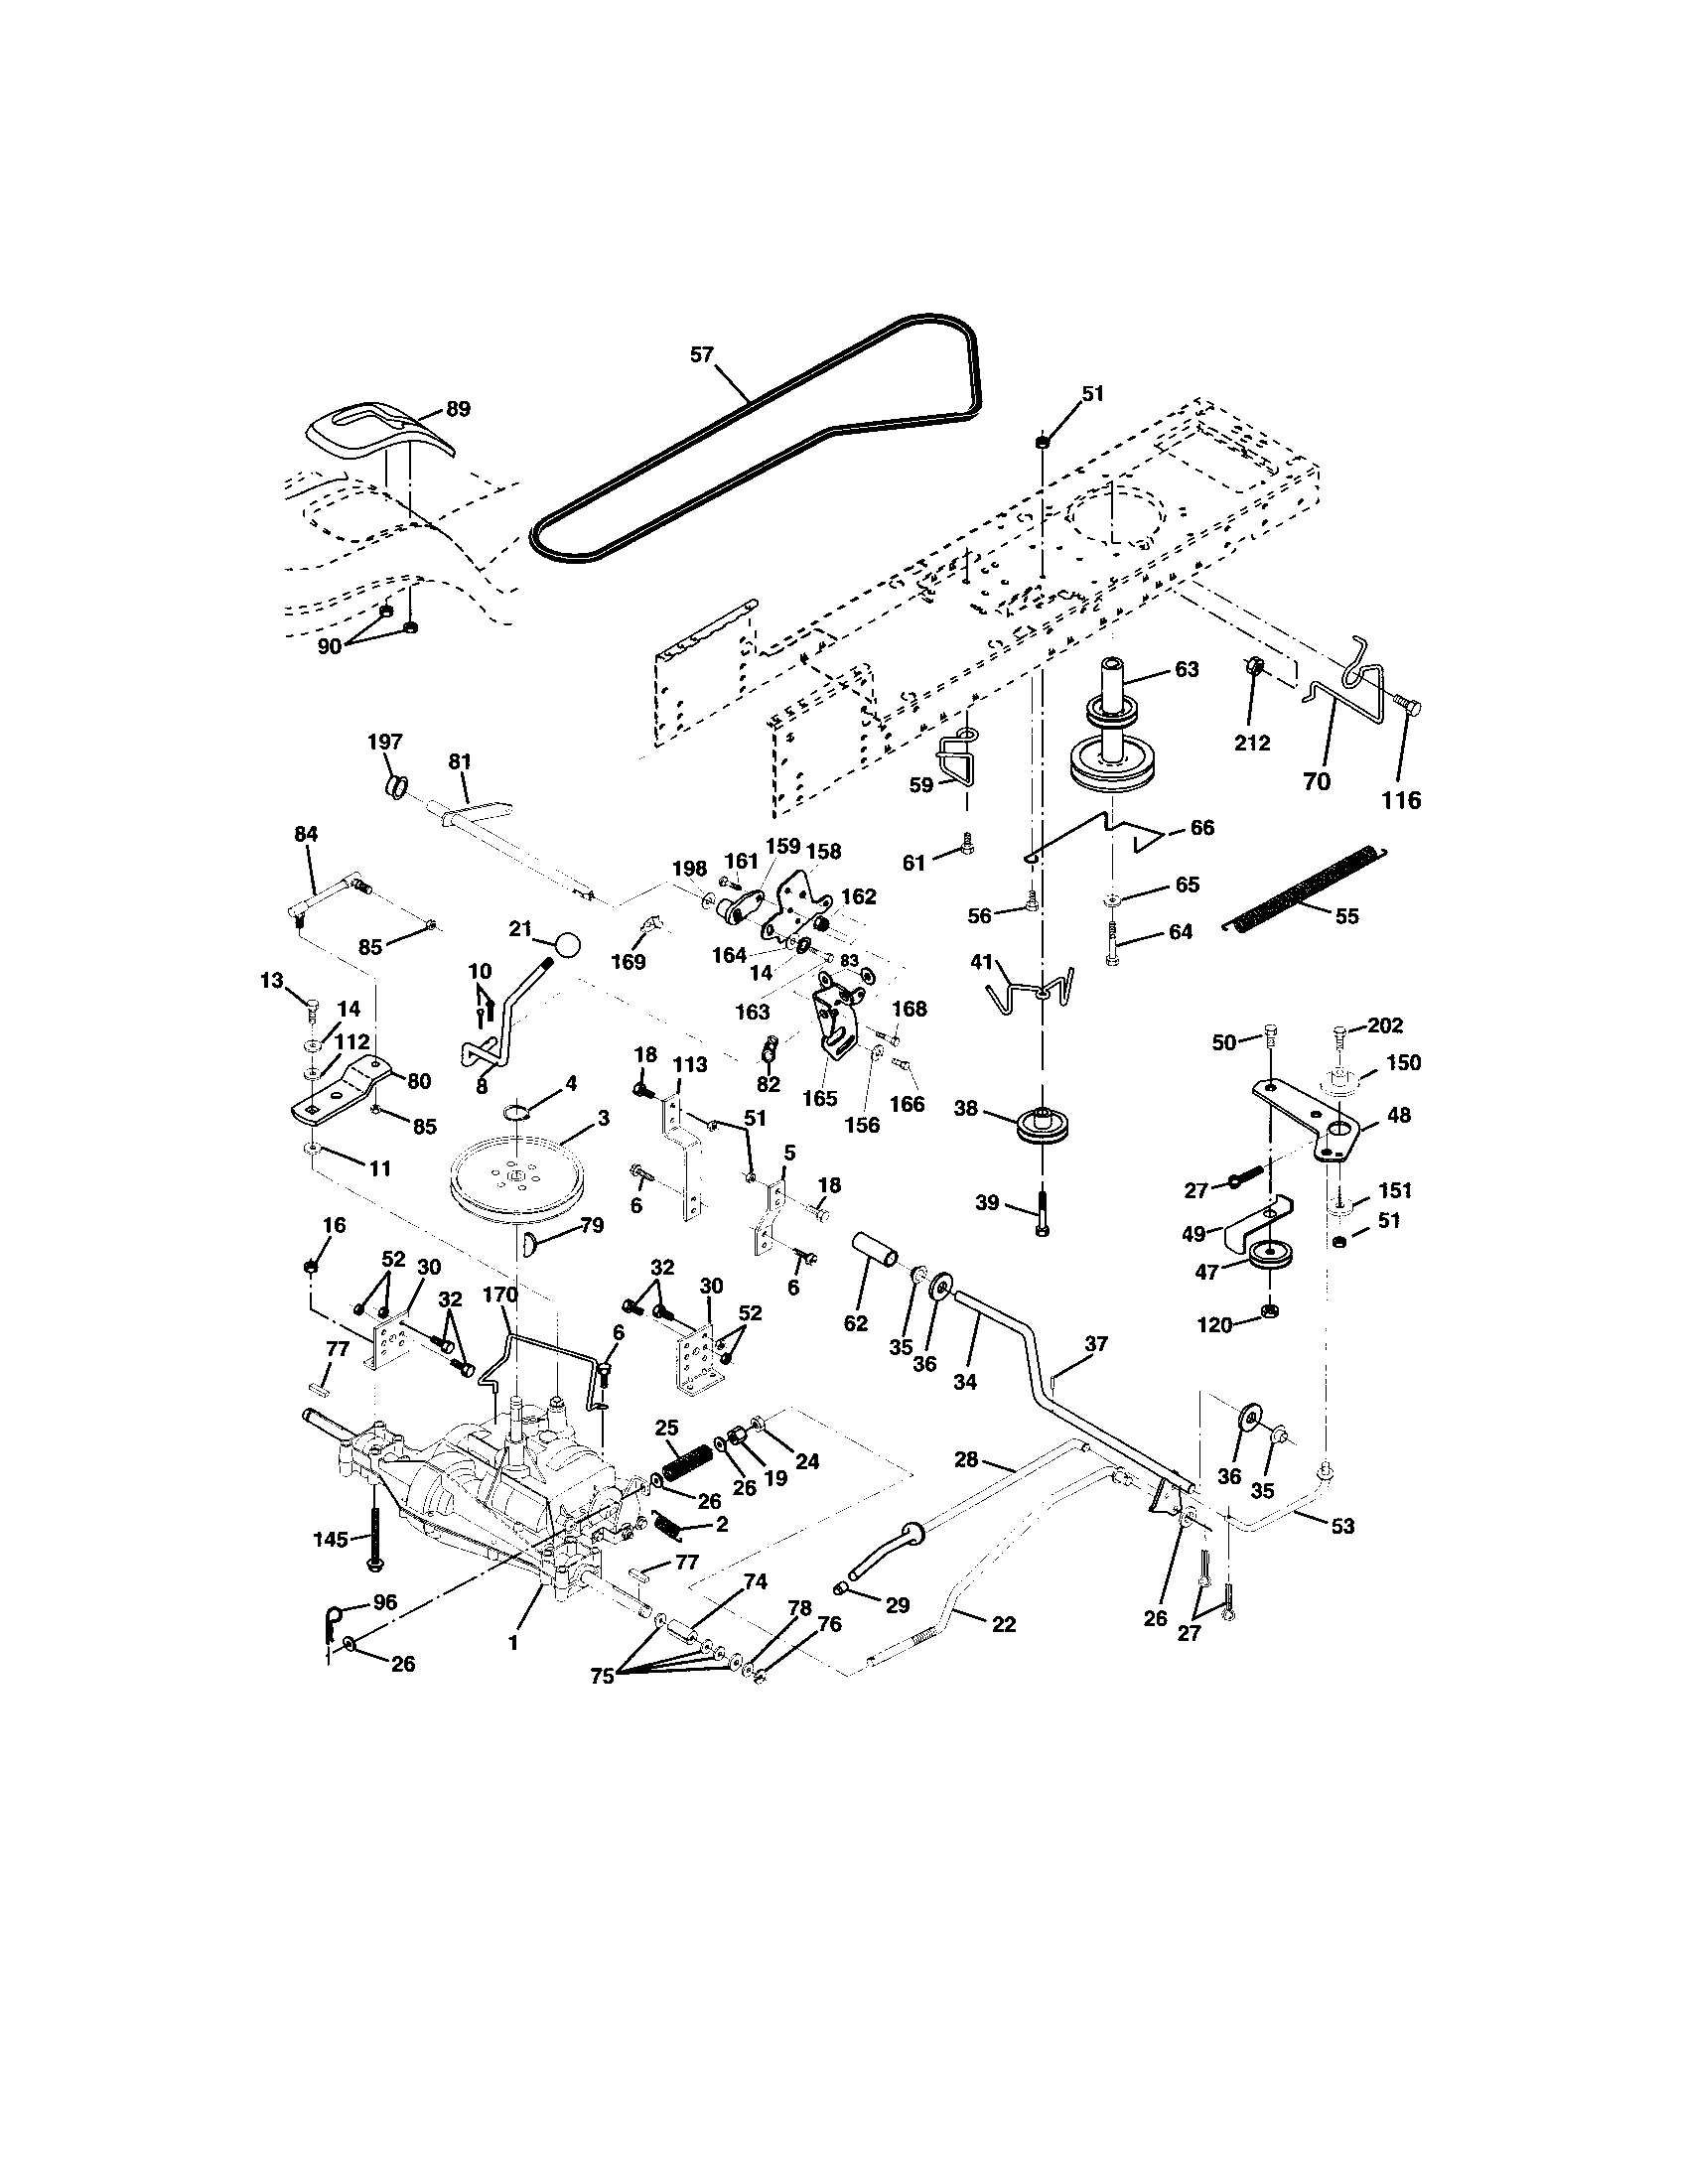 parts manual for craftman t130